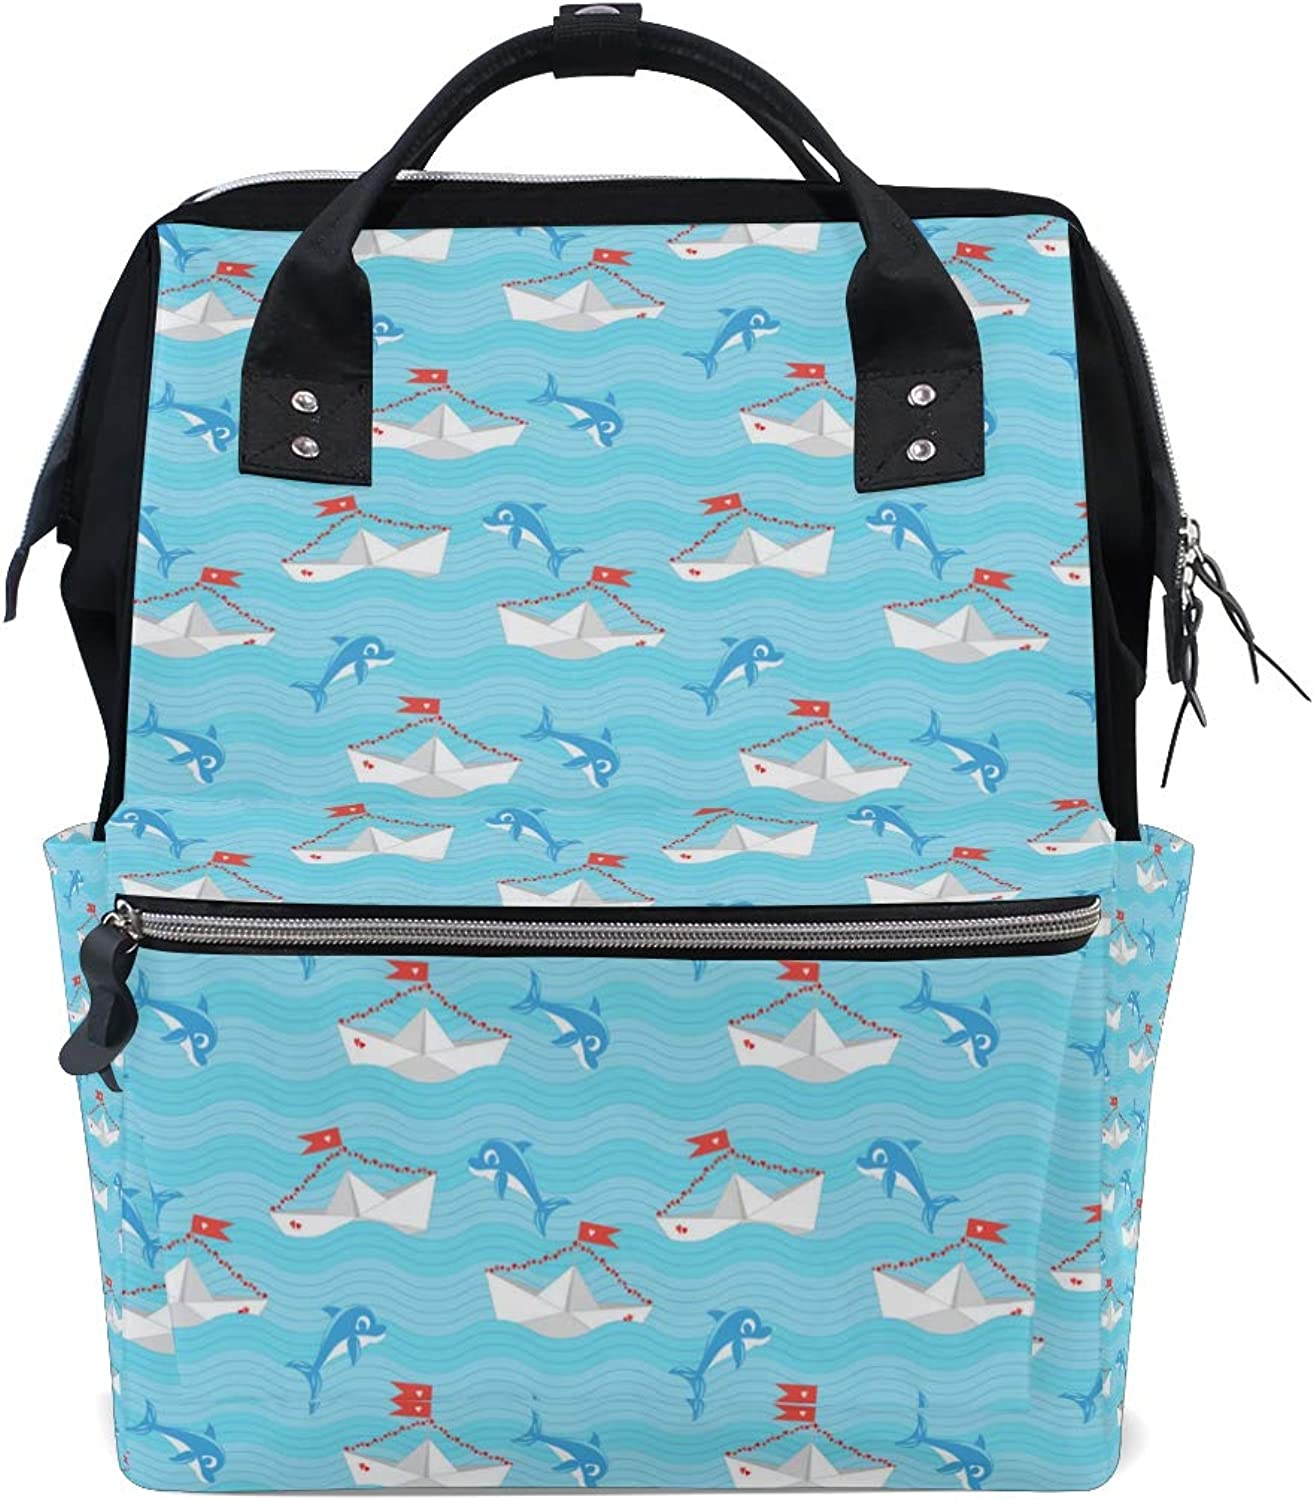 Dolphin Pop Dance Charm Leisure College Backpack Light Travel Male and Female Student Backpack Lightweight Canvas Backpack Medium Handbag Fashion Style Multifunction